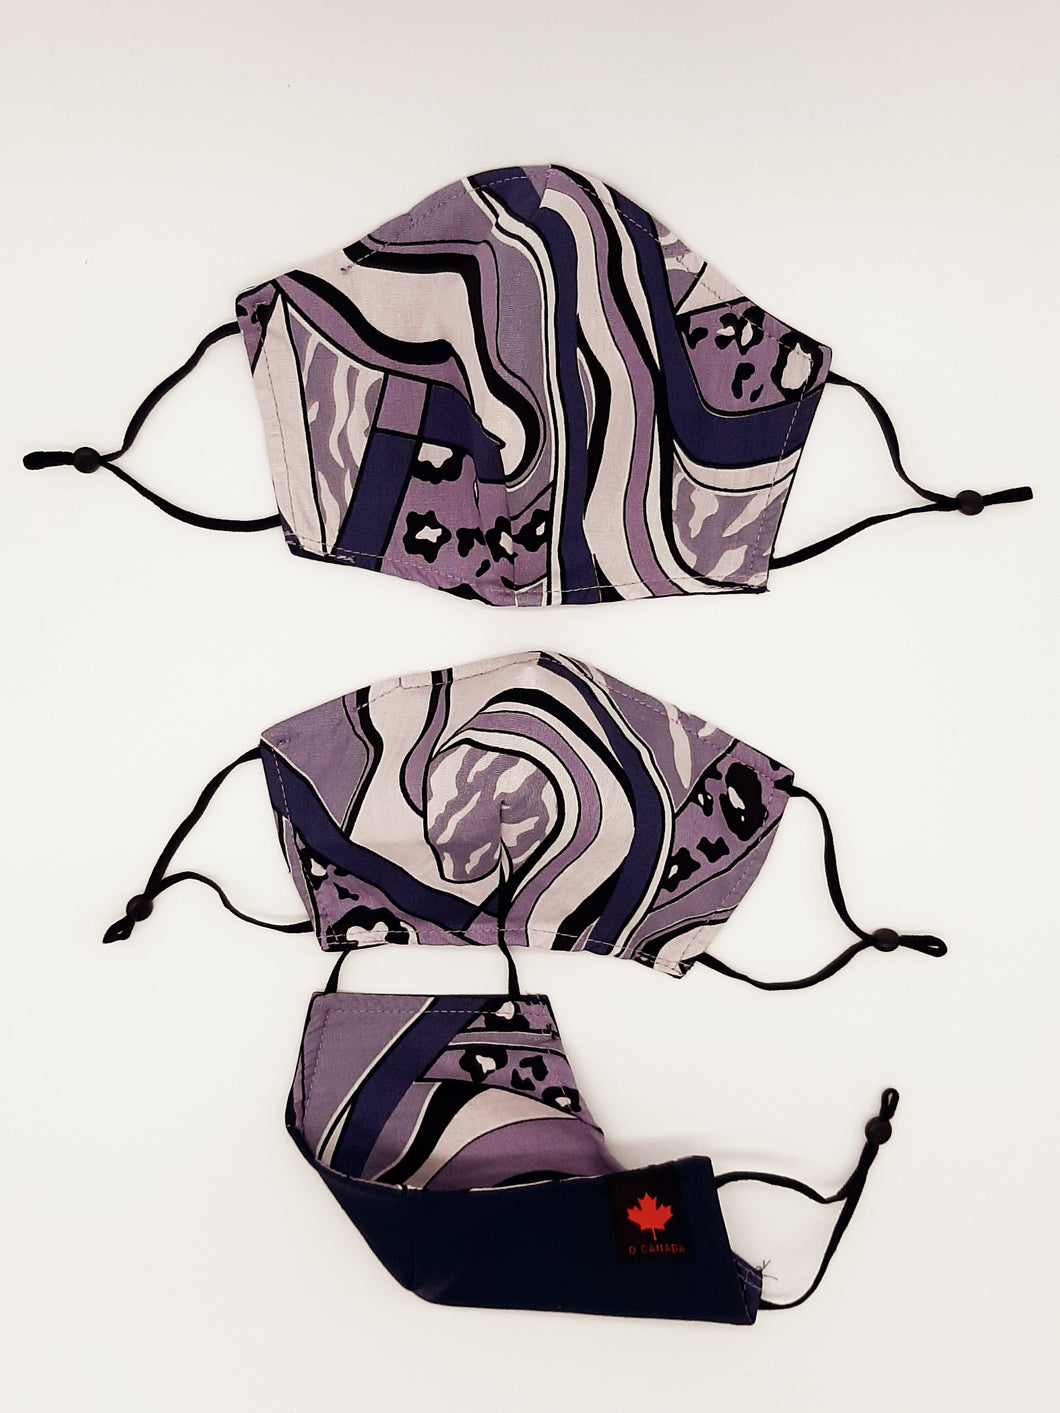 Back to School + Work Collection.   Print one side, solid color other side, reversible for versatility. Fashionable Face Covers that are functional, comfortable + Beautiful. If you have to wear a mask, wear one you LOVE!  Designed + Made in Canada.  Nose wire, adjustable ear loops, two layers of 100% cotton for comfort with integrate filter pocket between the two layer cotton layers.-C